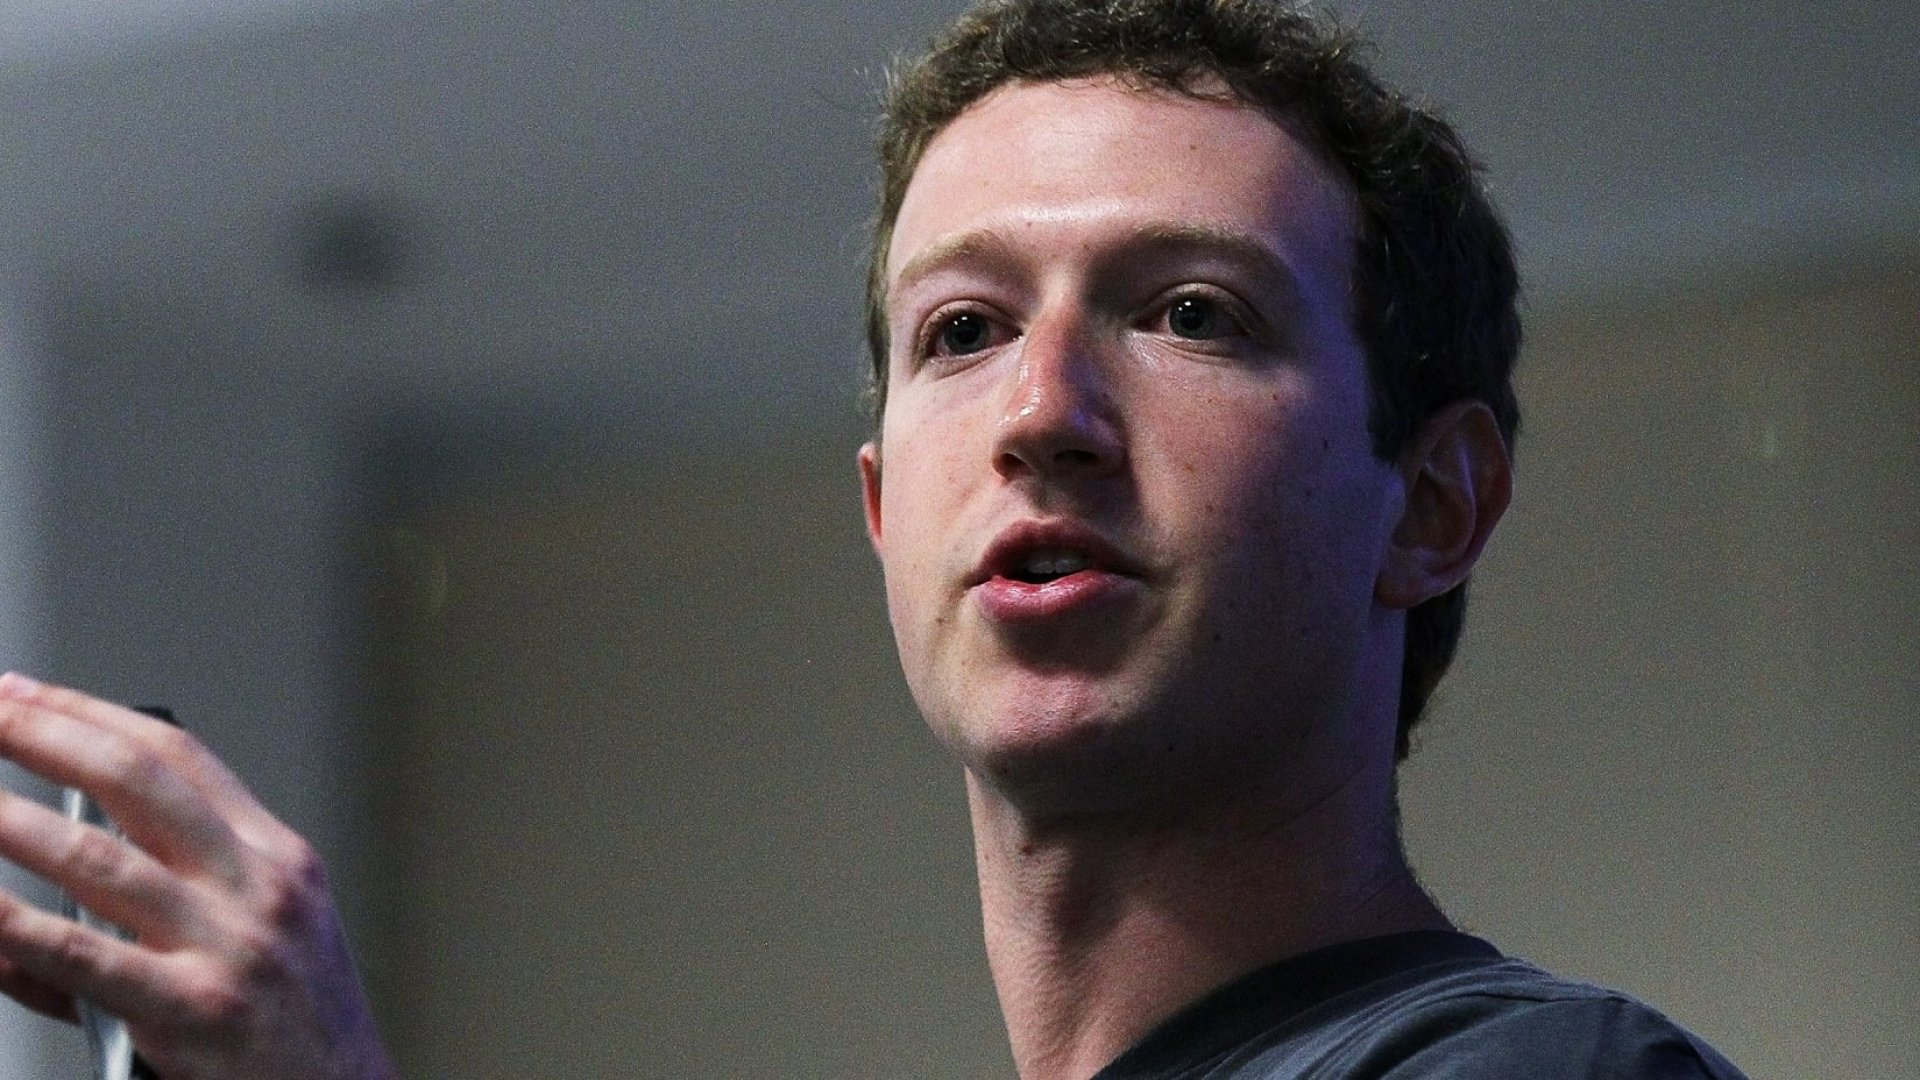 Want to Raise the Next Mark Zuckerberg or Jeff Bezos? Make Sure Your Kids Learn This